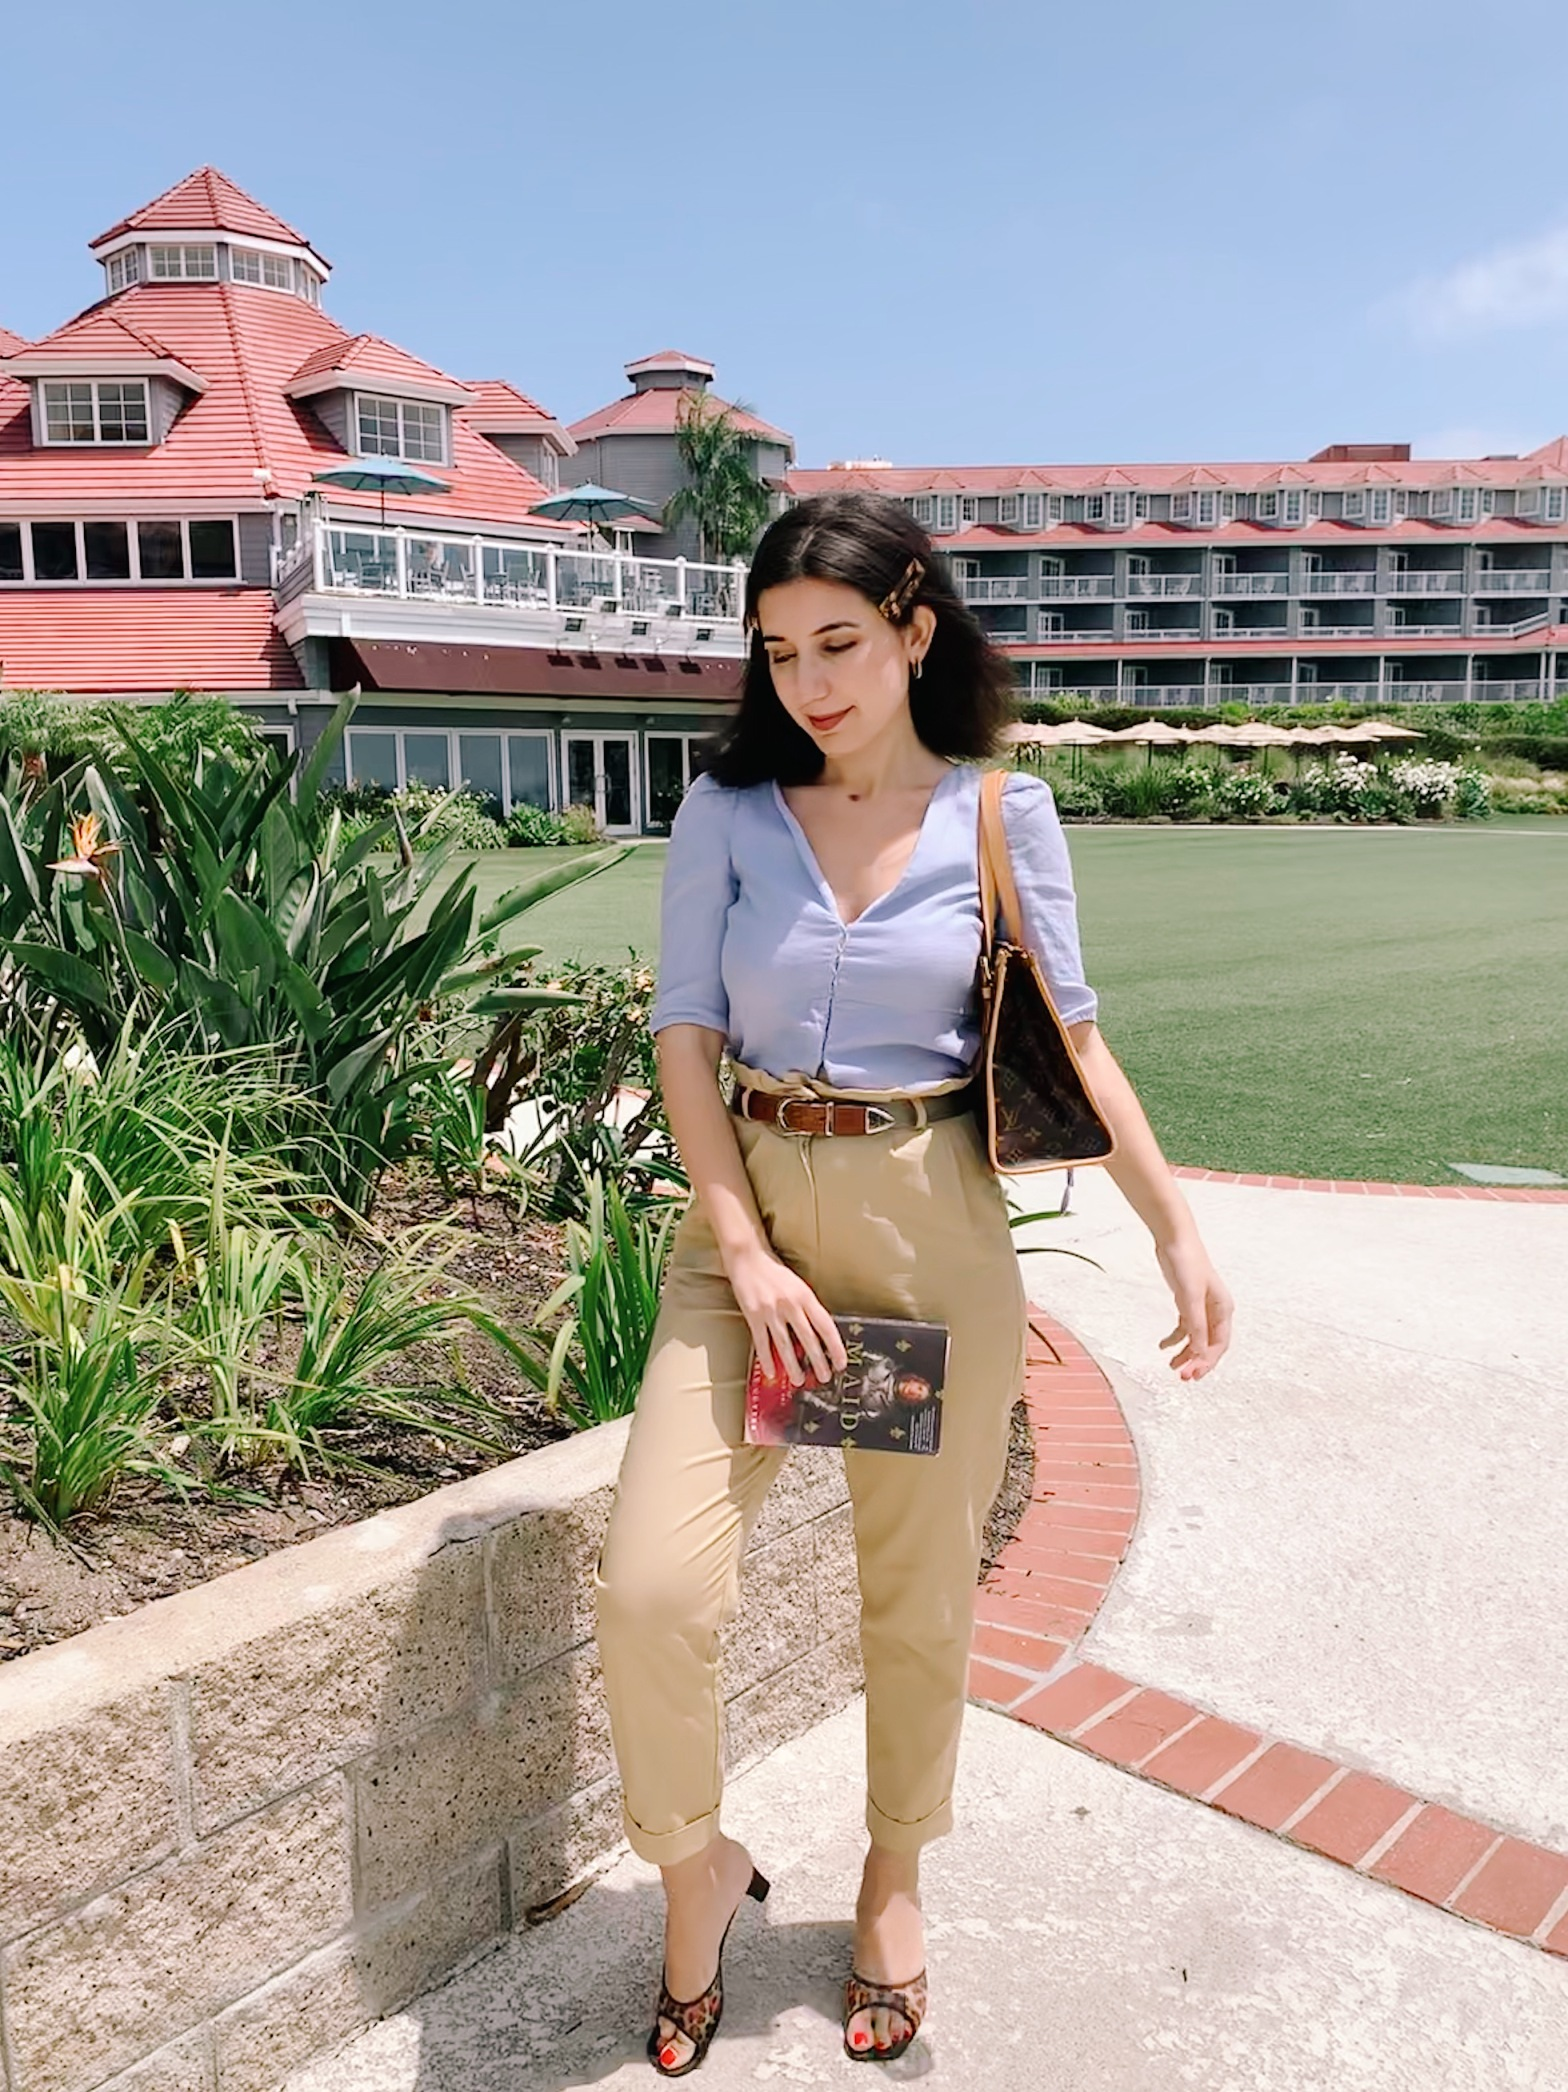 Dana Point, vacation fashion, beach fashion, beach style, Dana Point hotel, Fourth of July, ready to wear, resort wear, summer fashion, summer 2020 fashion, socially distanced summer, Fourth of July fashion, ootd, outfit of the day, linen, paper bag pants, trousers, khaki, blue, cheetah print, open toe shoes, vintage fashion, vintage belt, Laguna beach, Louis Vuitton, Louis Vuitton purse, casual clothes, off duty style, hair accessories, fashion blogger, vintage fashion blogger, 1930s style, fashion history, holiday style, summer resort, Laguna Beach, Orange County, Orange County style, OC style,